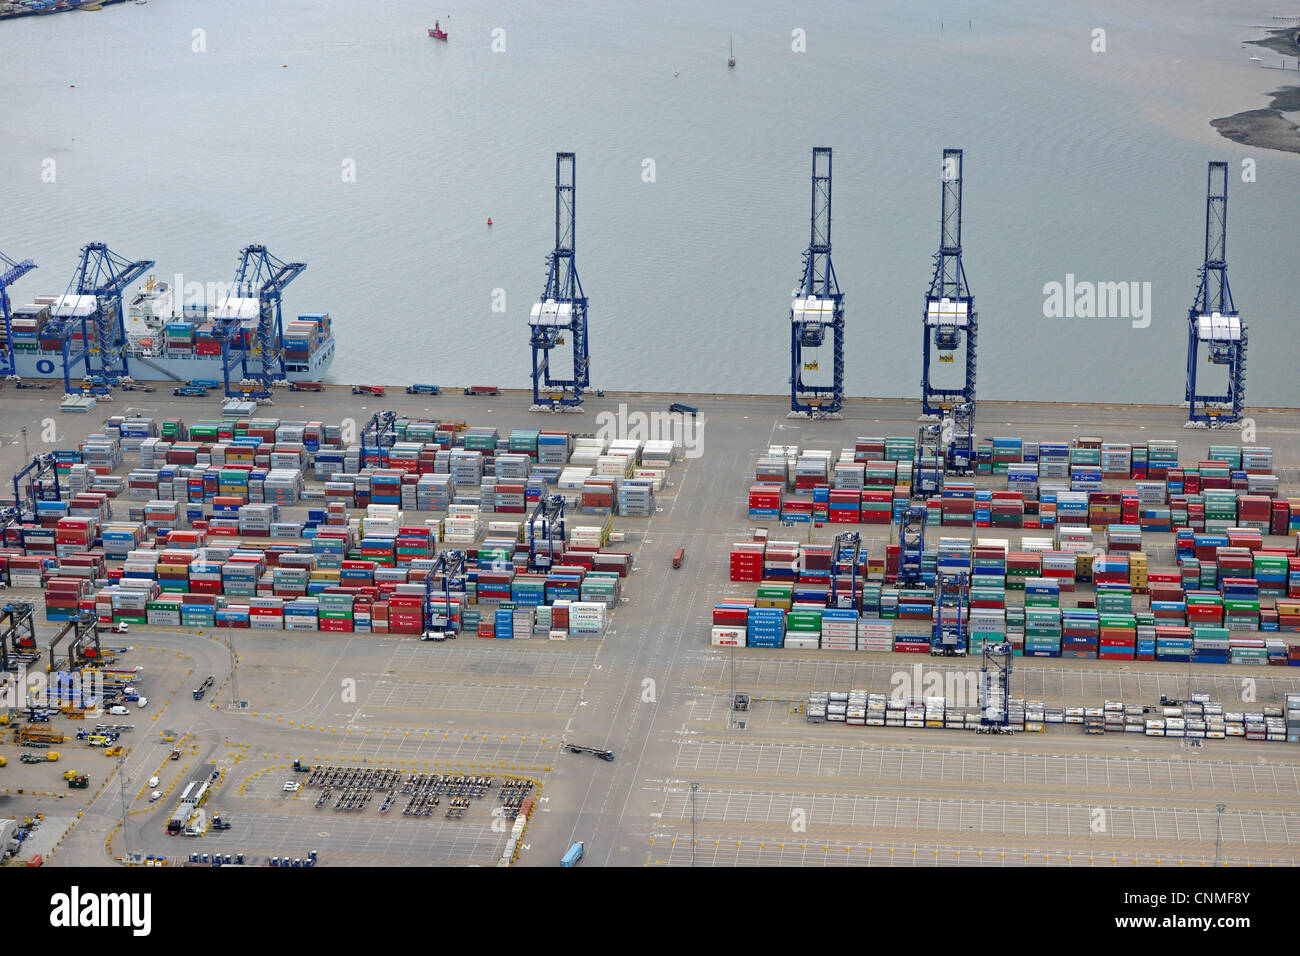 Aerial Photograph showing Felixstowe Docks with shipping containers and cranes. - Stock Image